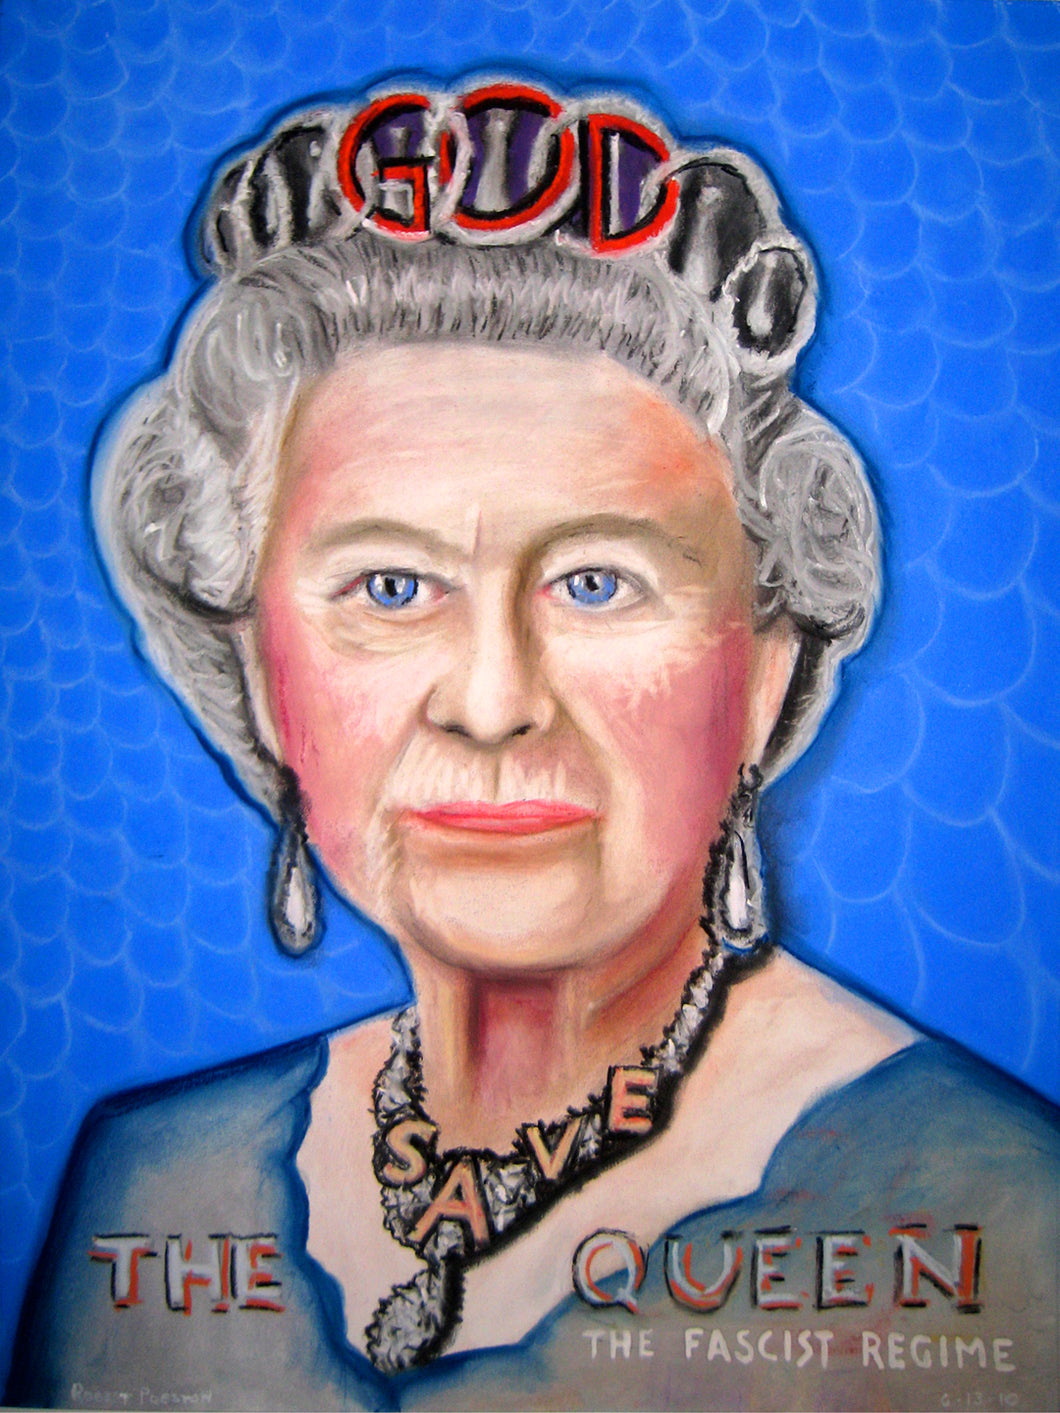 God Save the Queen of the Fascist Regime